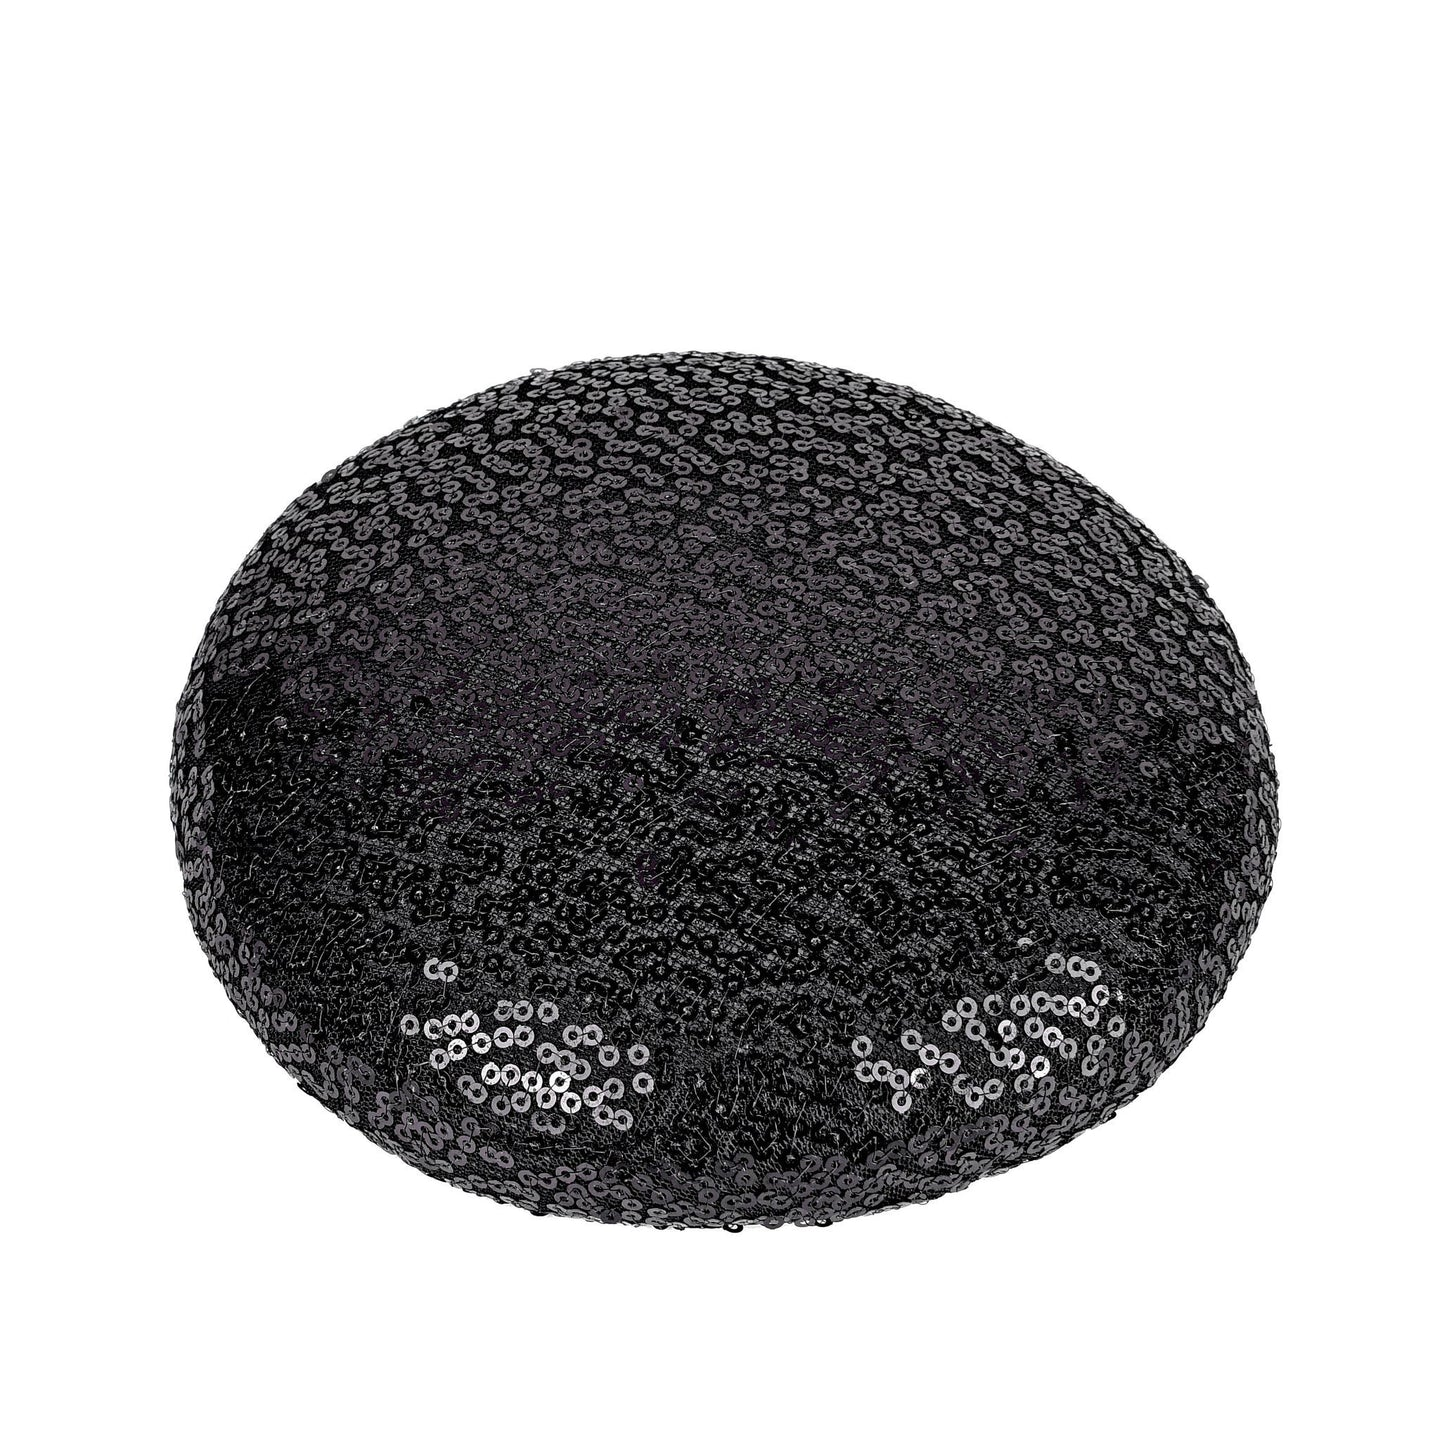 Sinamay And Sequin Pillbox for Hats Fascinators and Millinery HA004